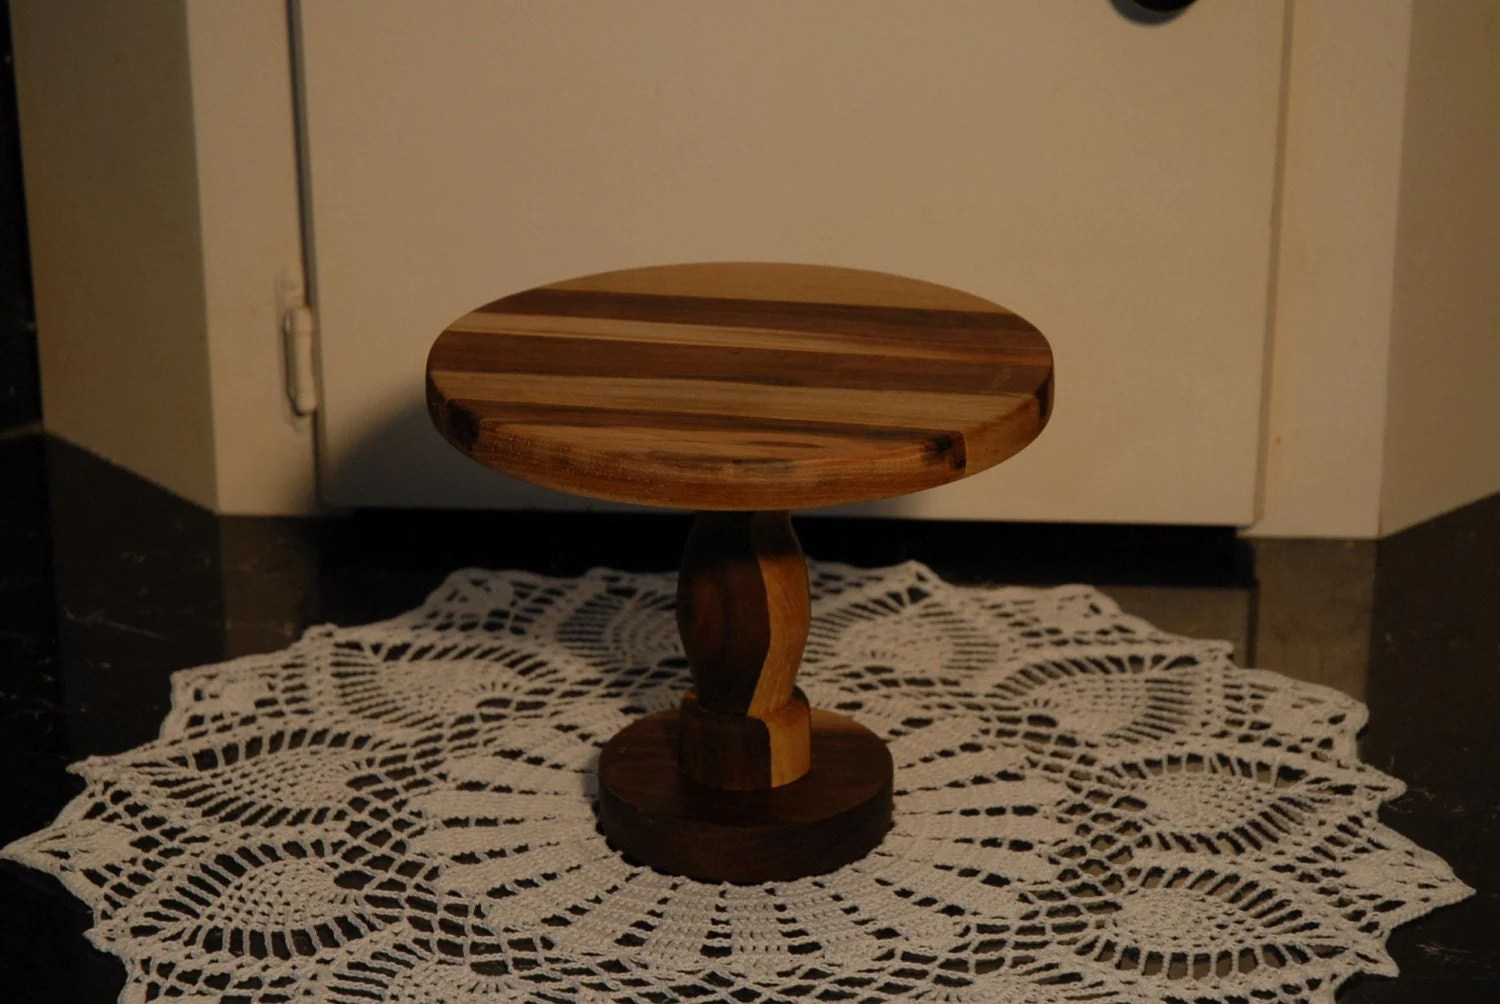 Cupcake Pedestal Small Cake Stand Wooden Display